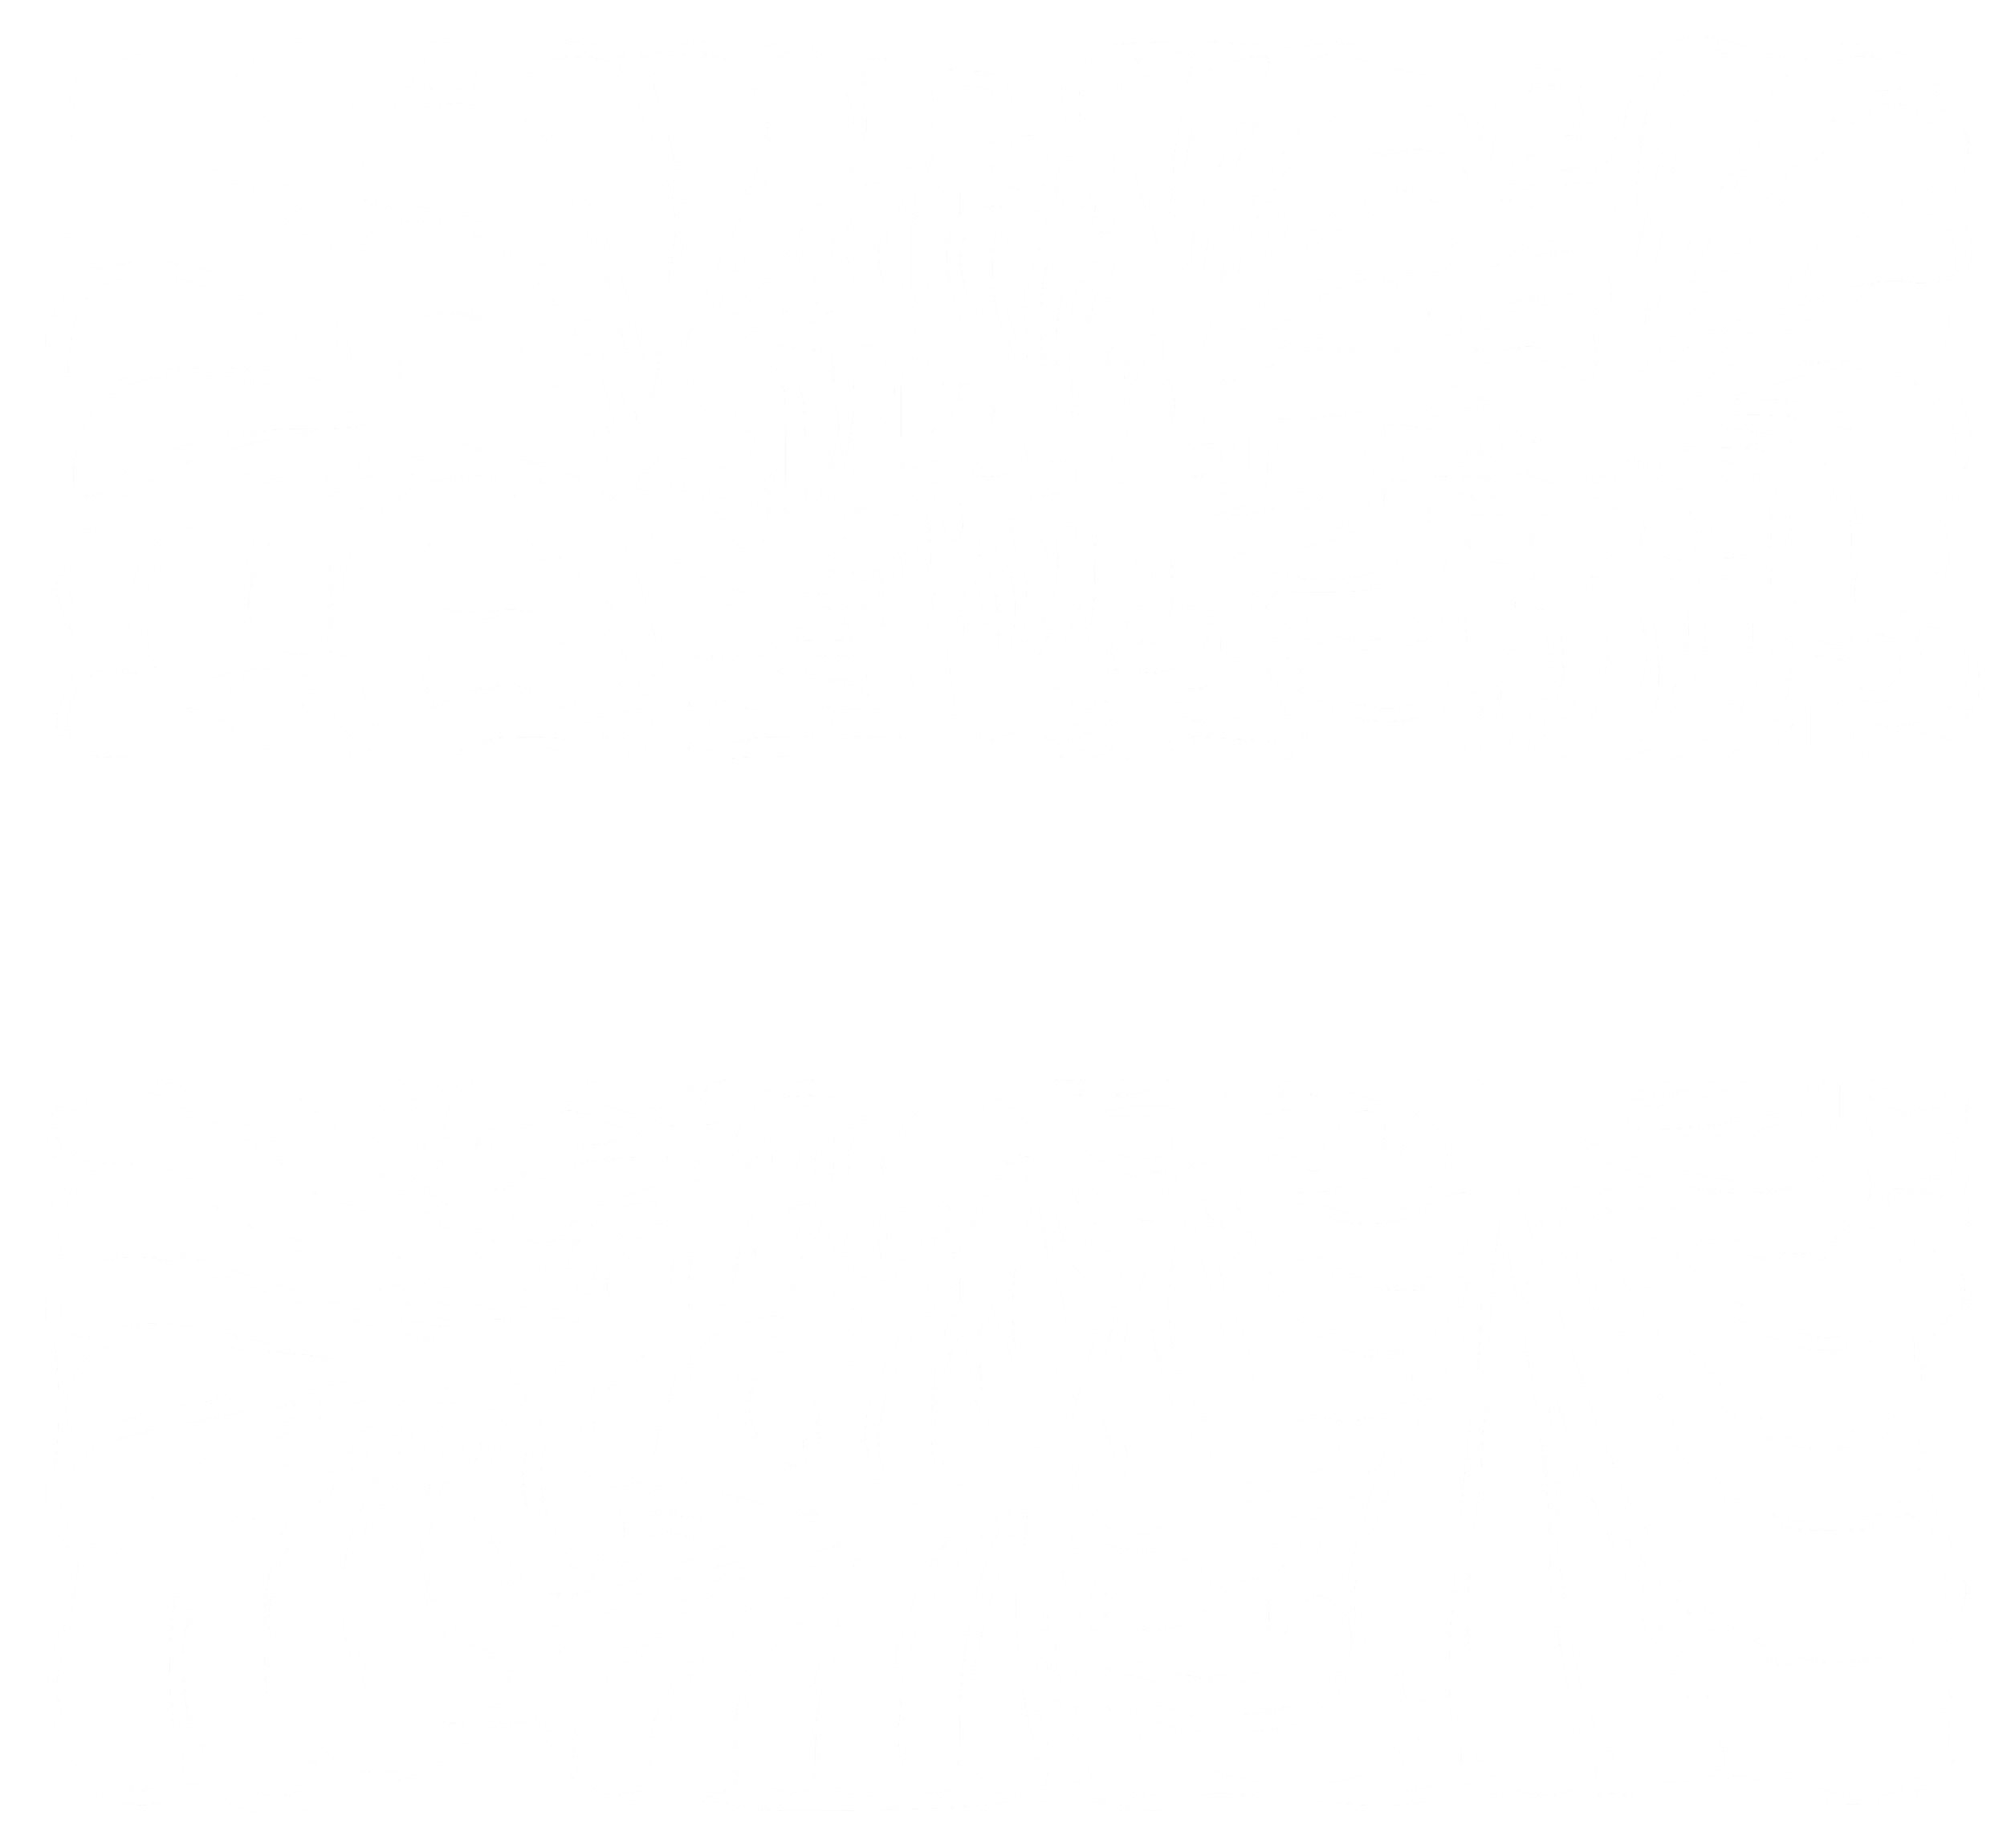 vasacrafts-whitetrans copy.png